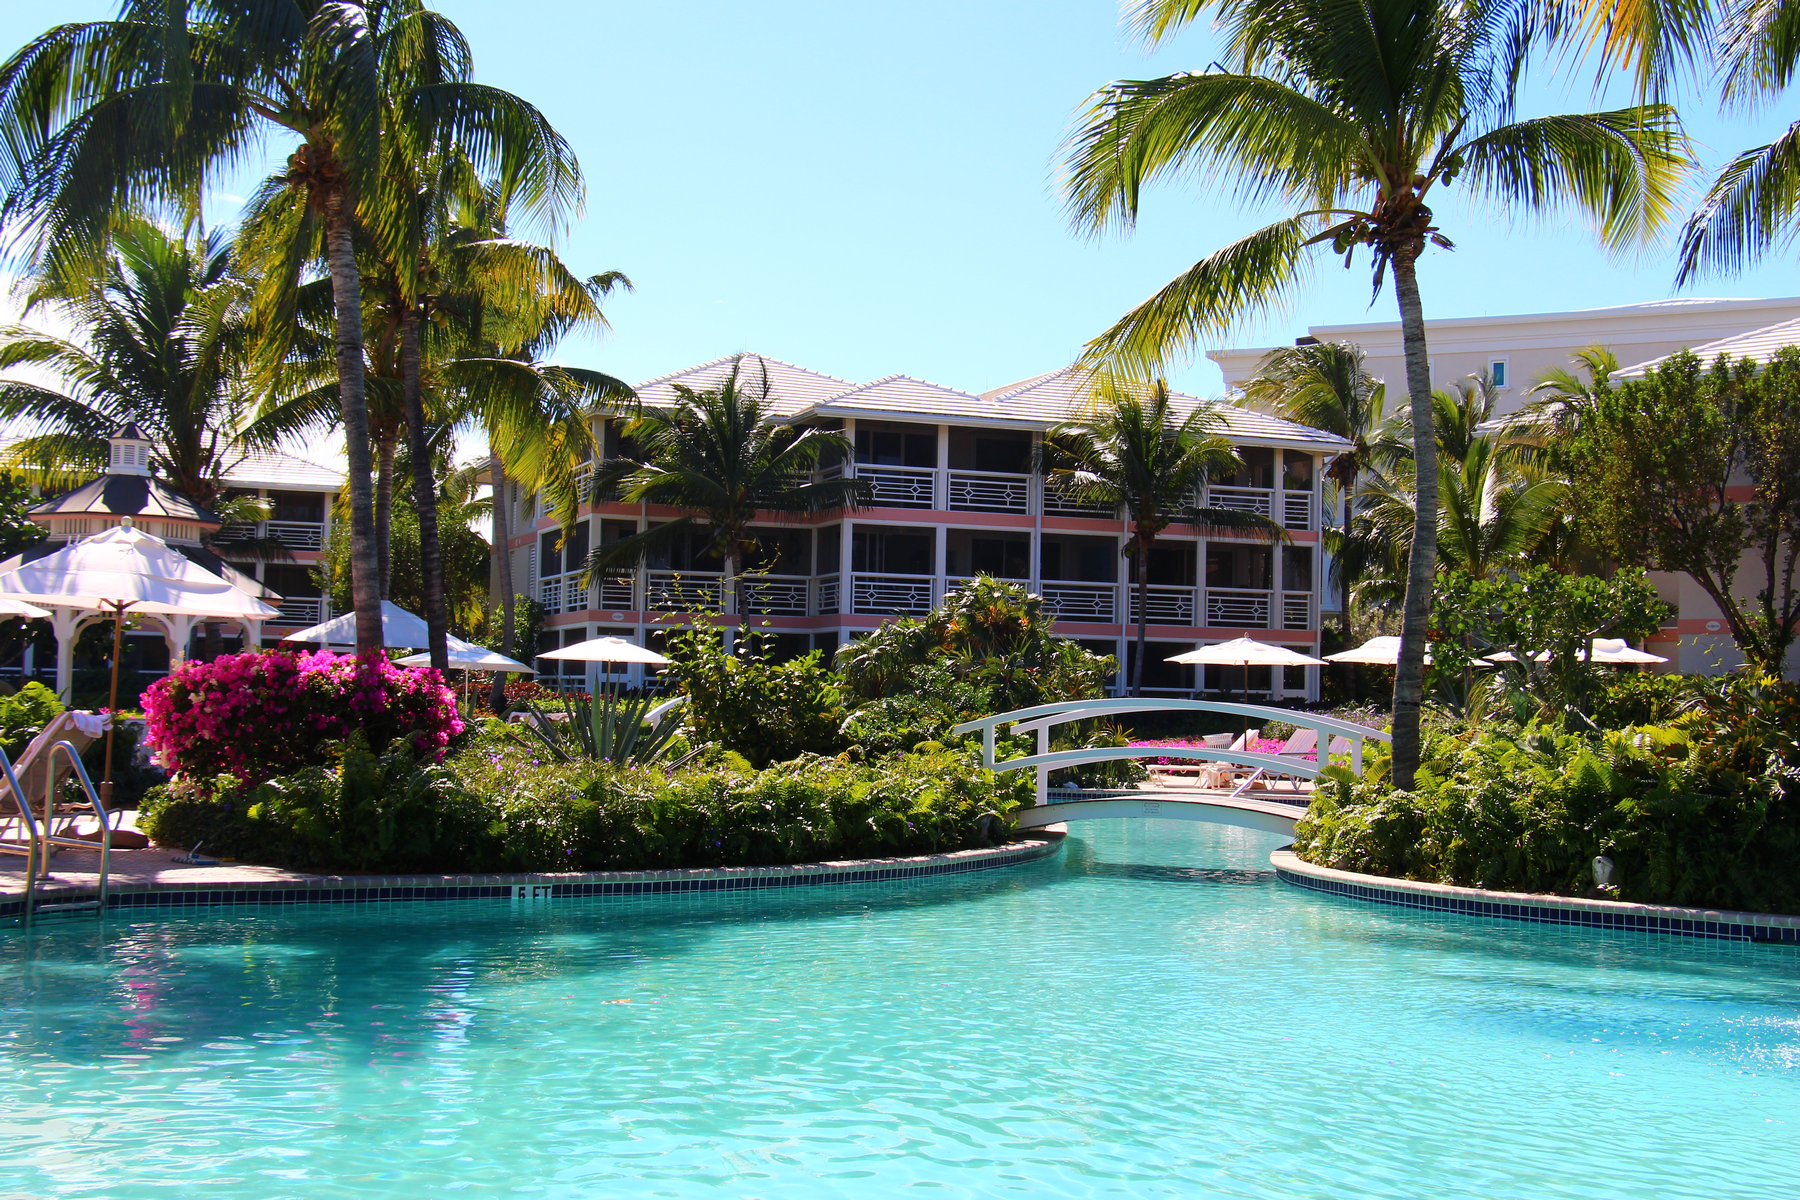 Additional photo for property listing at Ocean Club West 726 Oceanfront 格蕾斯湾, 普罗维登夏 TCI 特克斯和凯科斯群岛